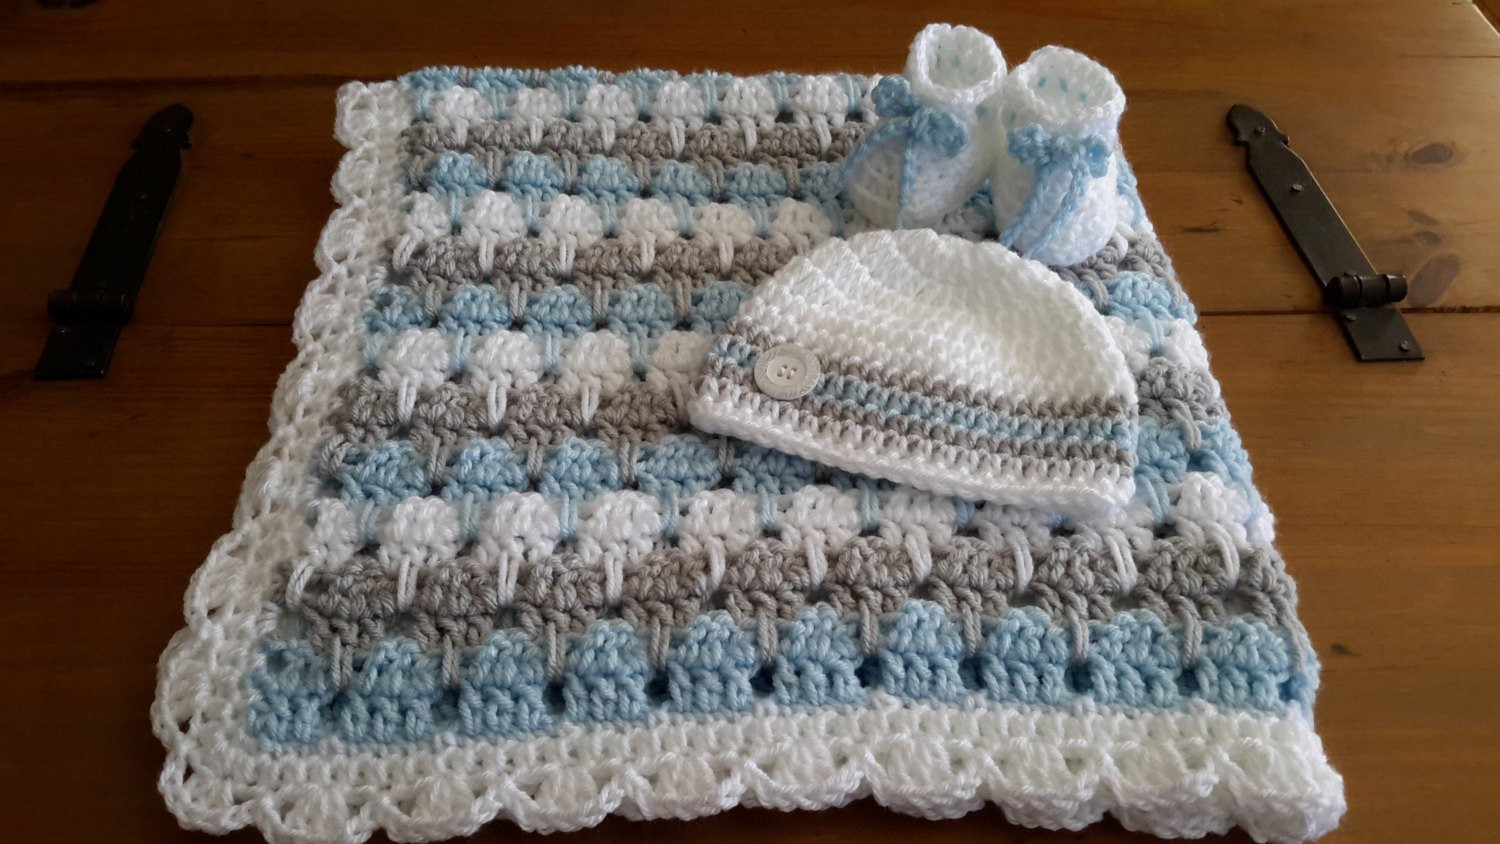 Baby Boy Crochet Blanket Patterns Lovely Baby Boy Blanket Crochet Stripe Crochet Blanket Afghan Of Baby Boy Crochet Blanket Patterns Lovely My Crochet Part 395